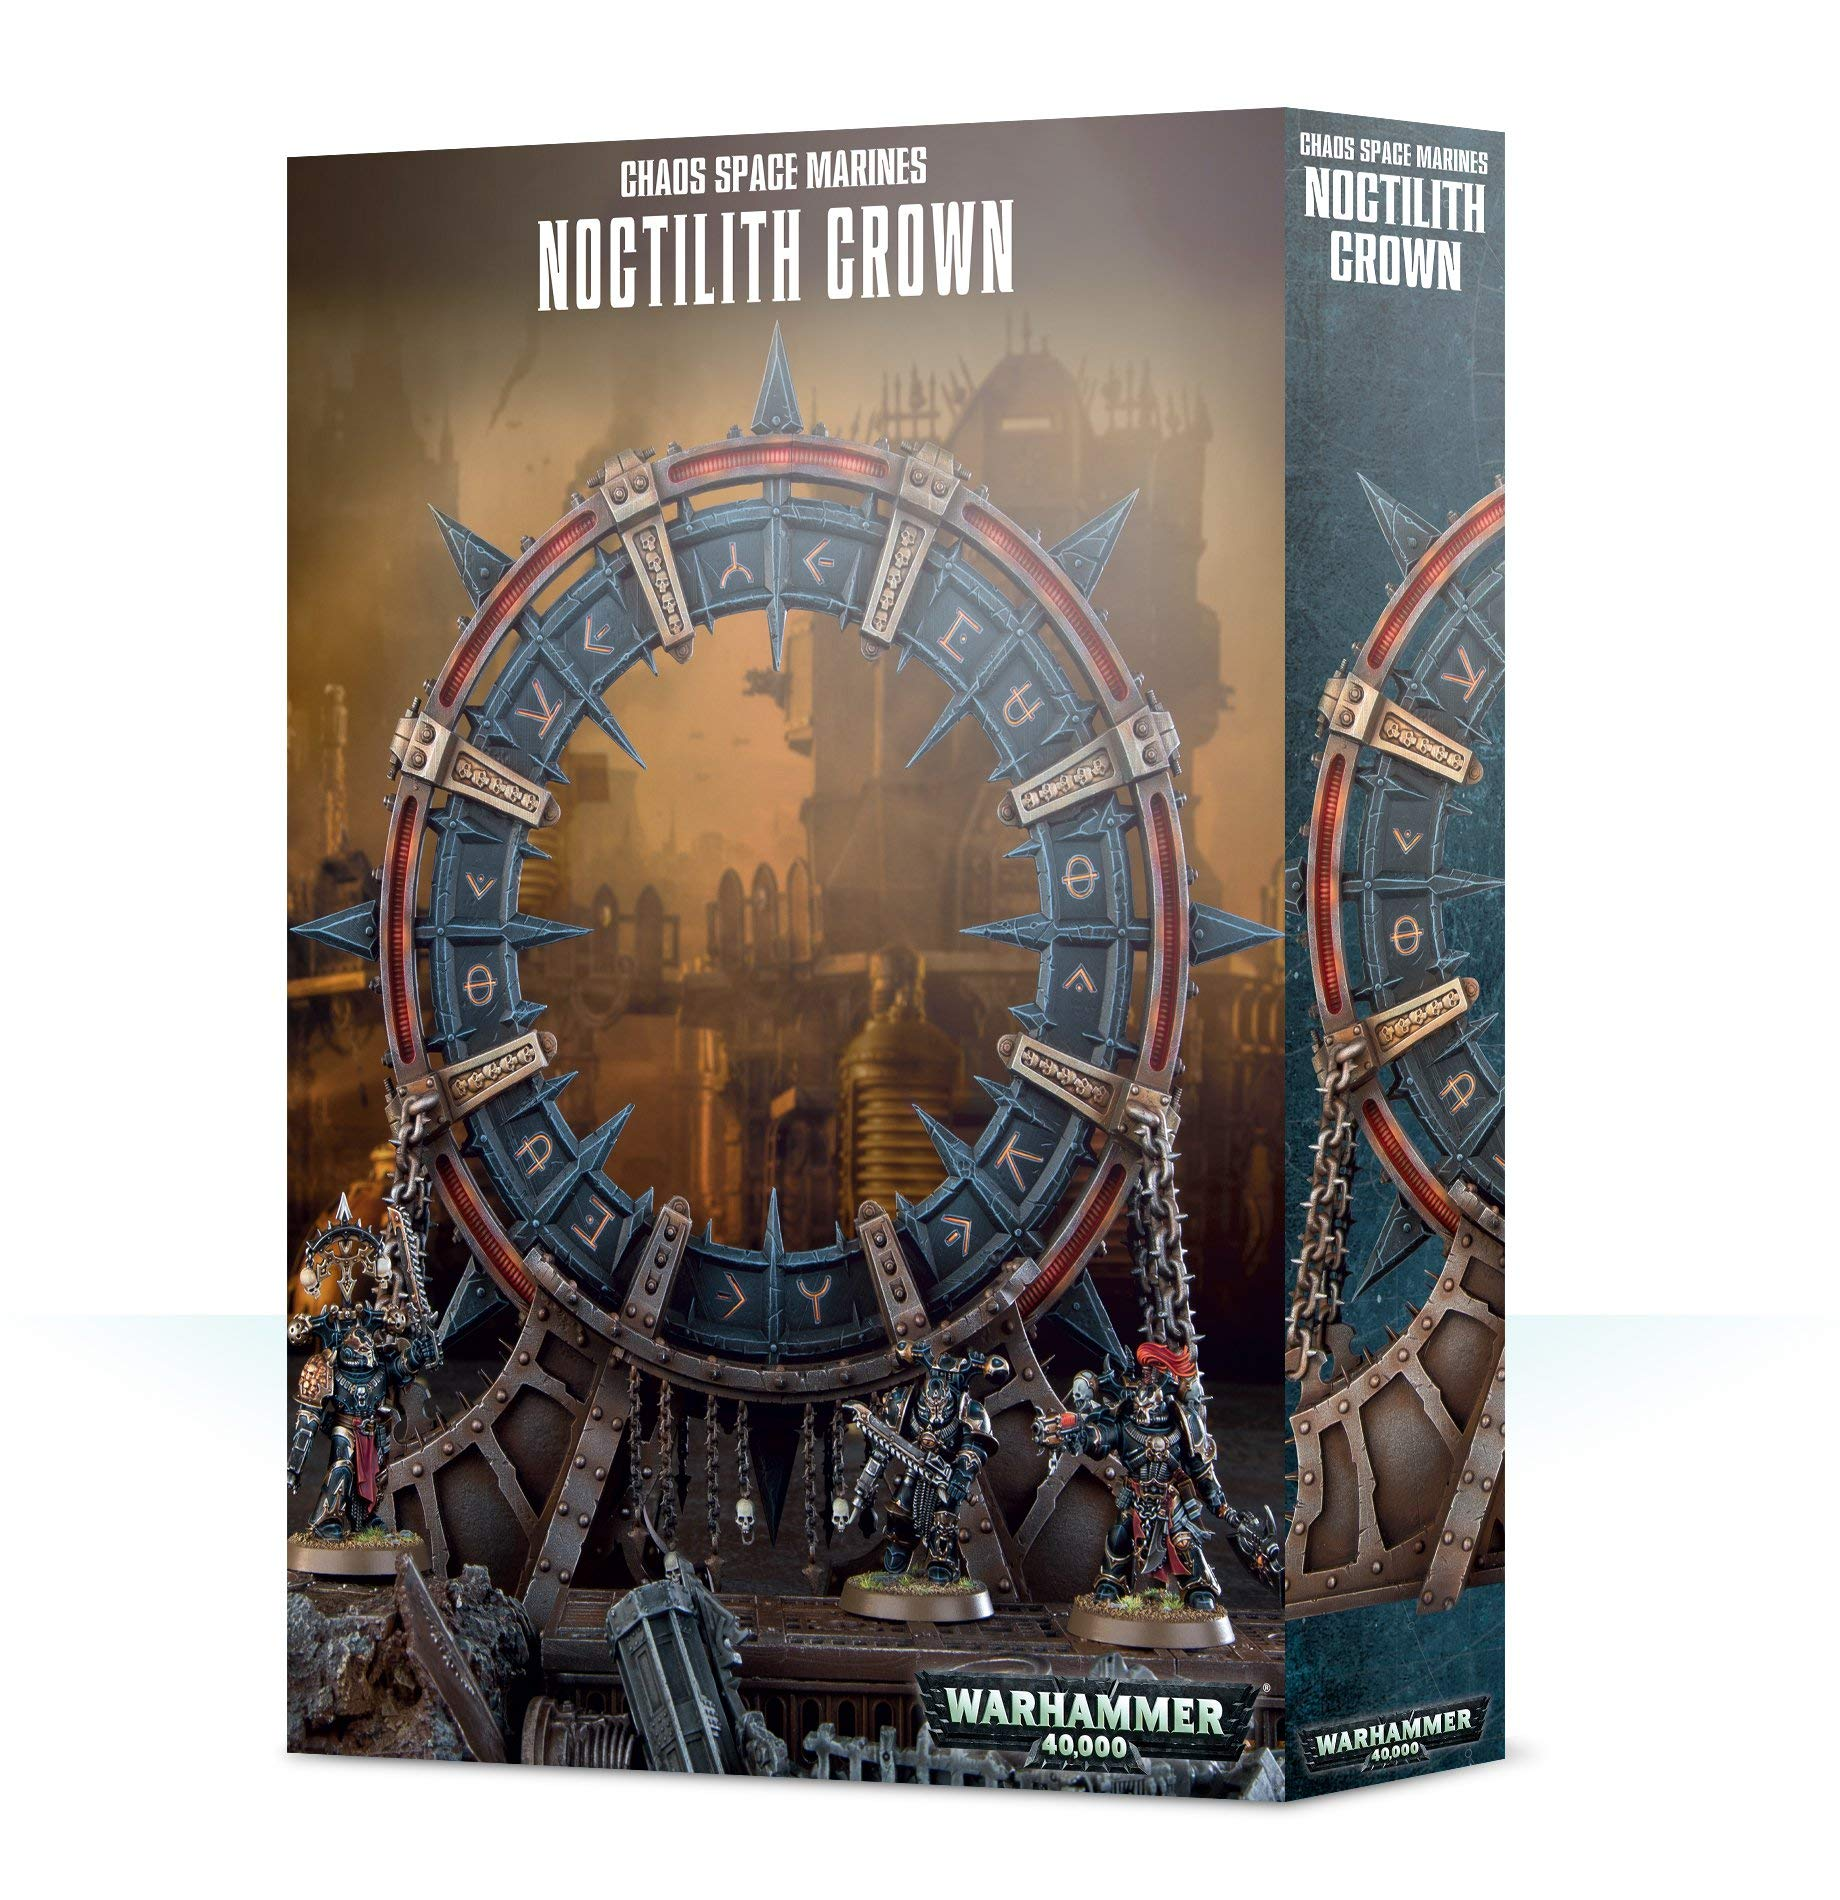 Games Workshop: Warhammer 40,000: Chaos Space Marines Noctilith Crown